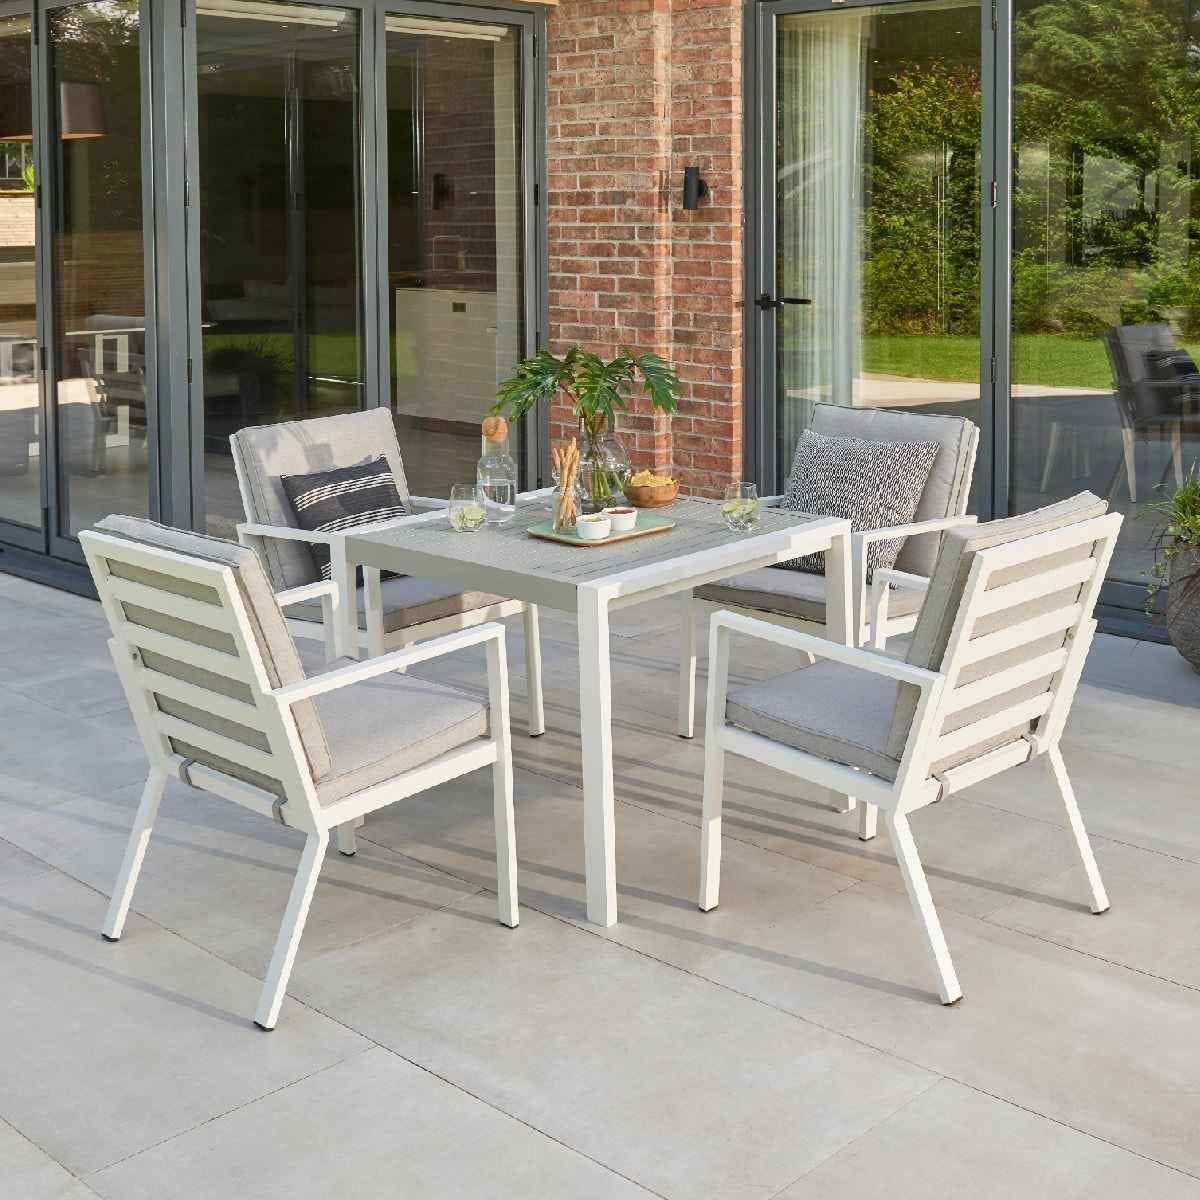 Handpicked Titchwell 4 Seat Dining Set - White